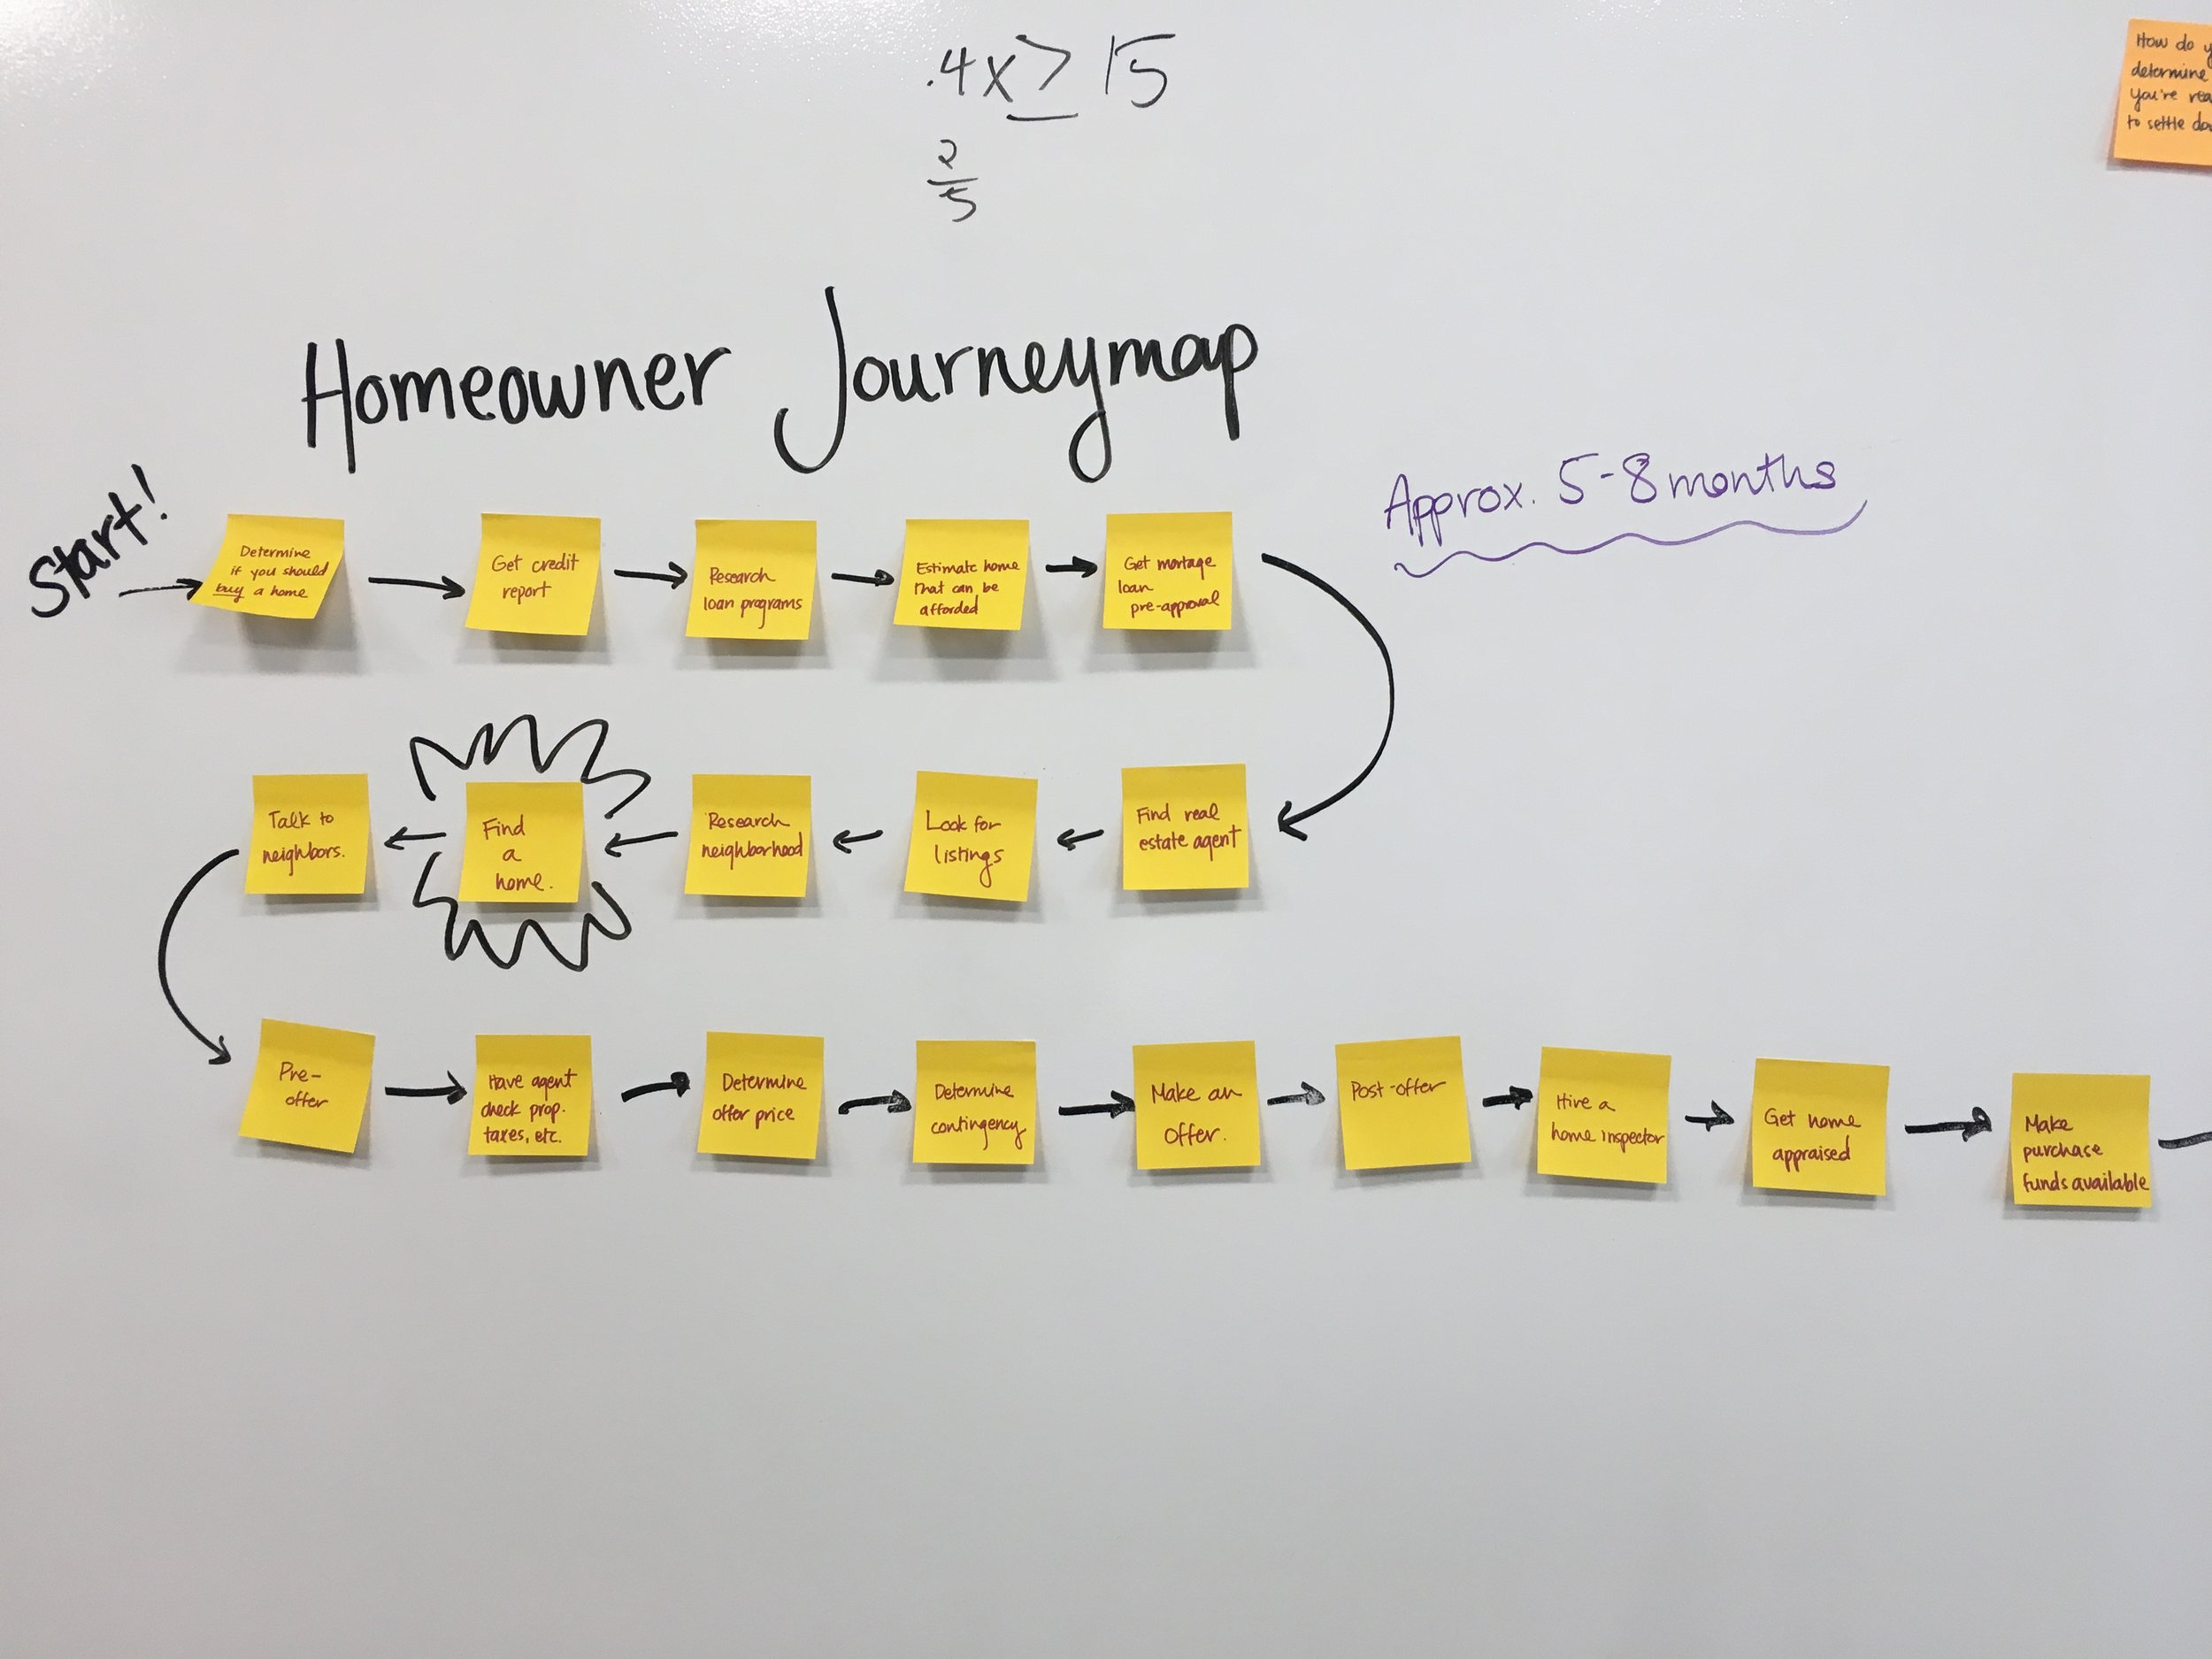 Our process to understand homeownership.